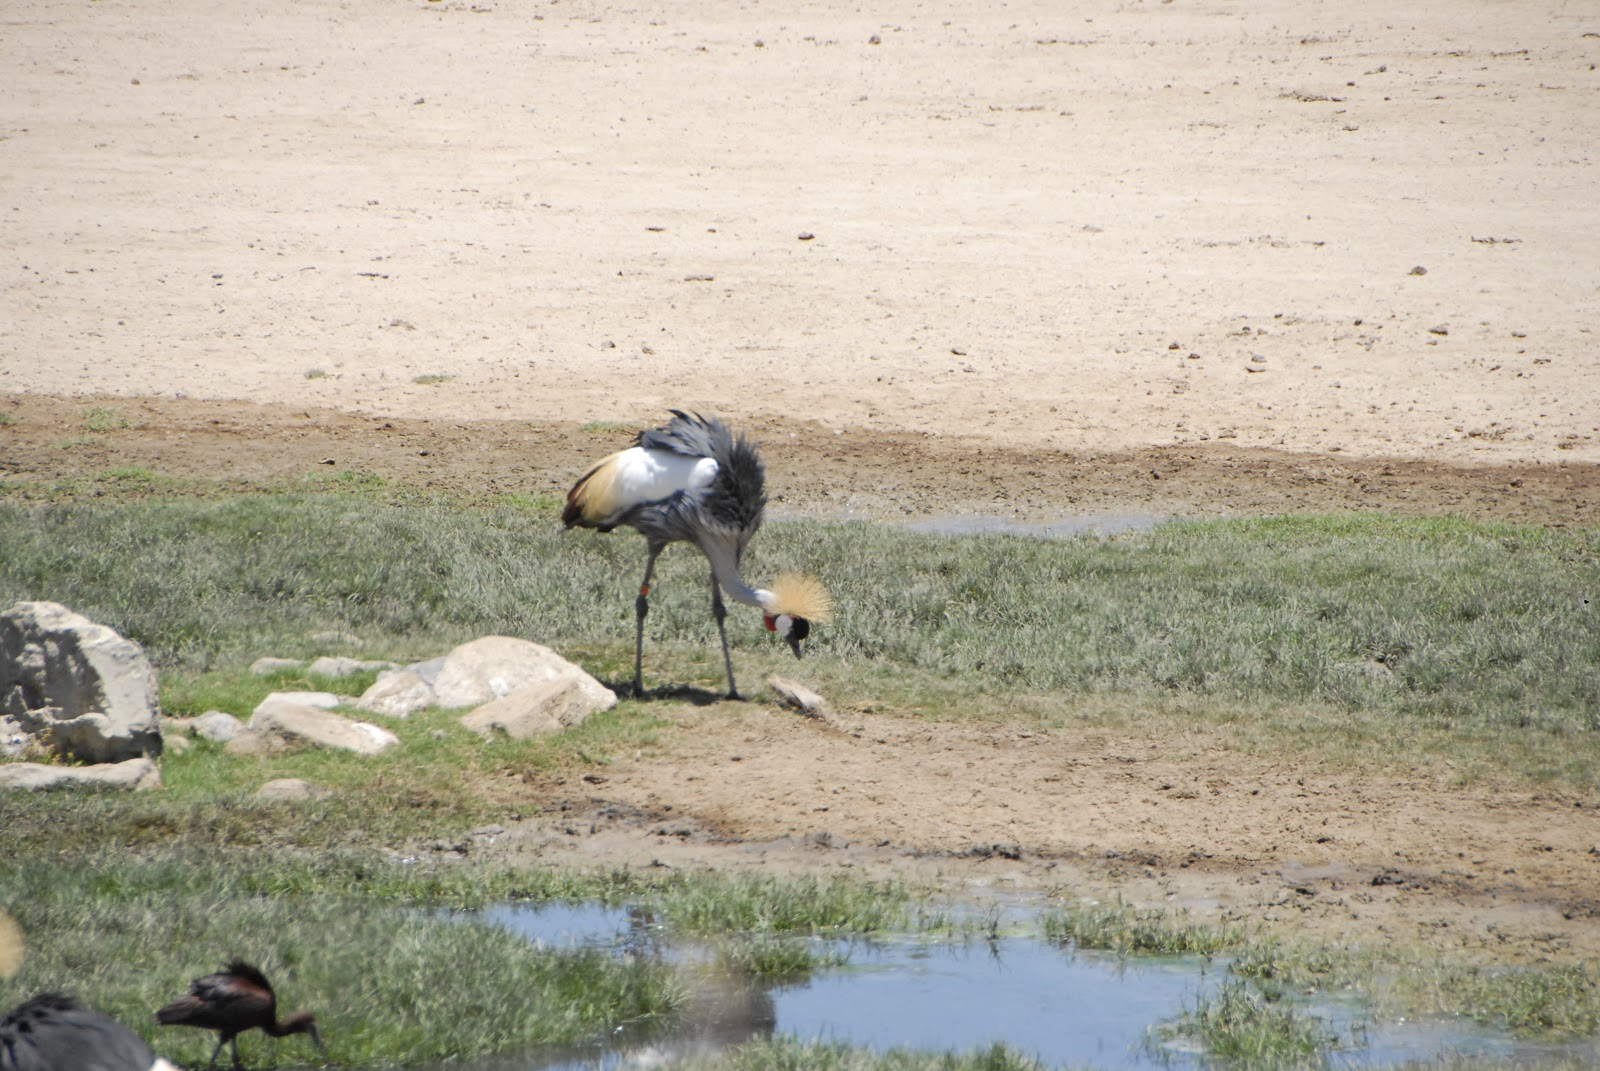 Crane nesting in water habitat